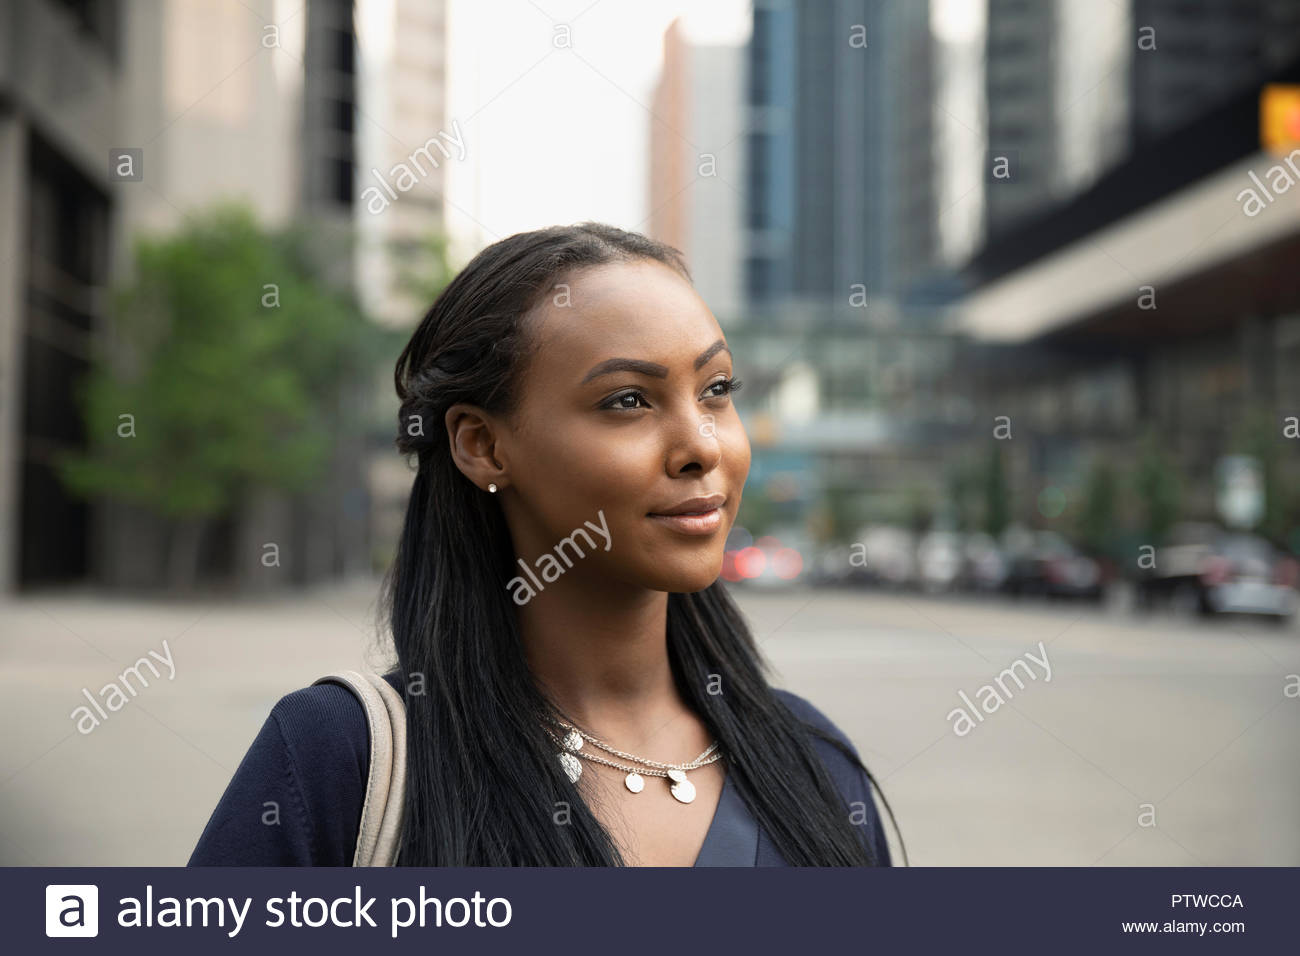 Confident, thoughtful, forward looking young woman on urban street - Stock Image